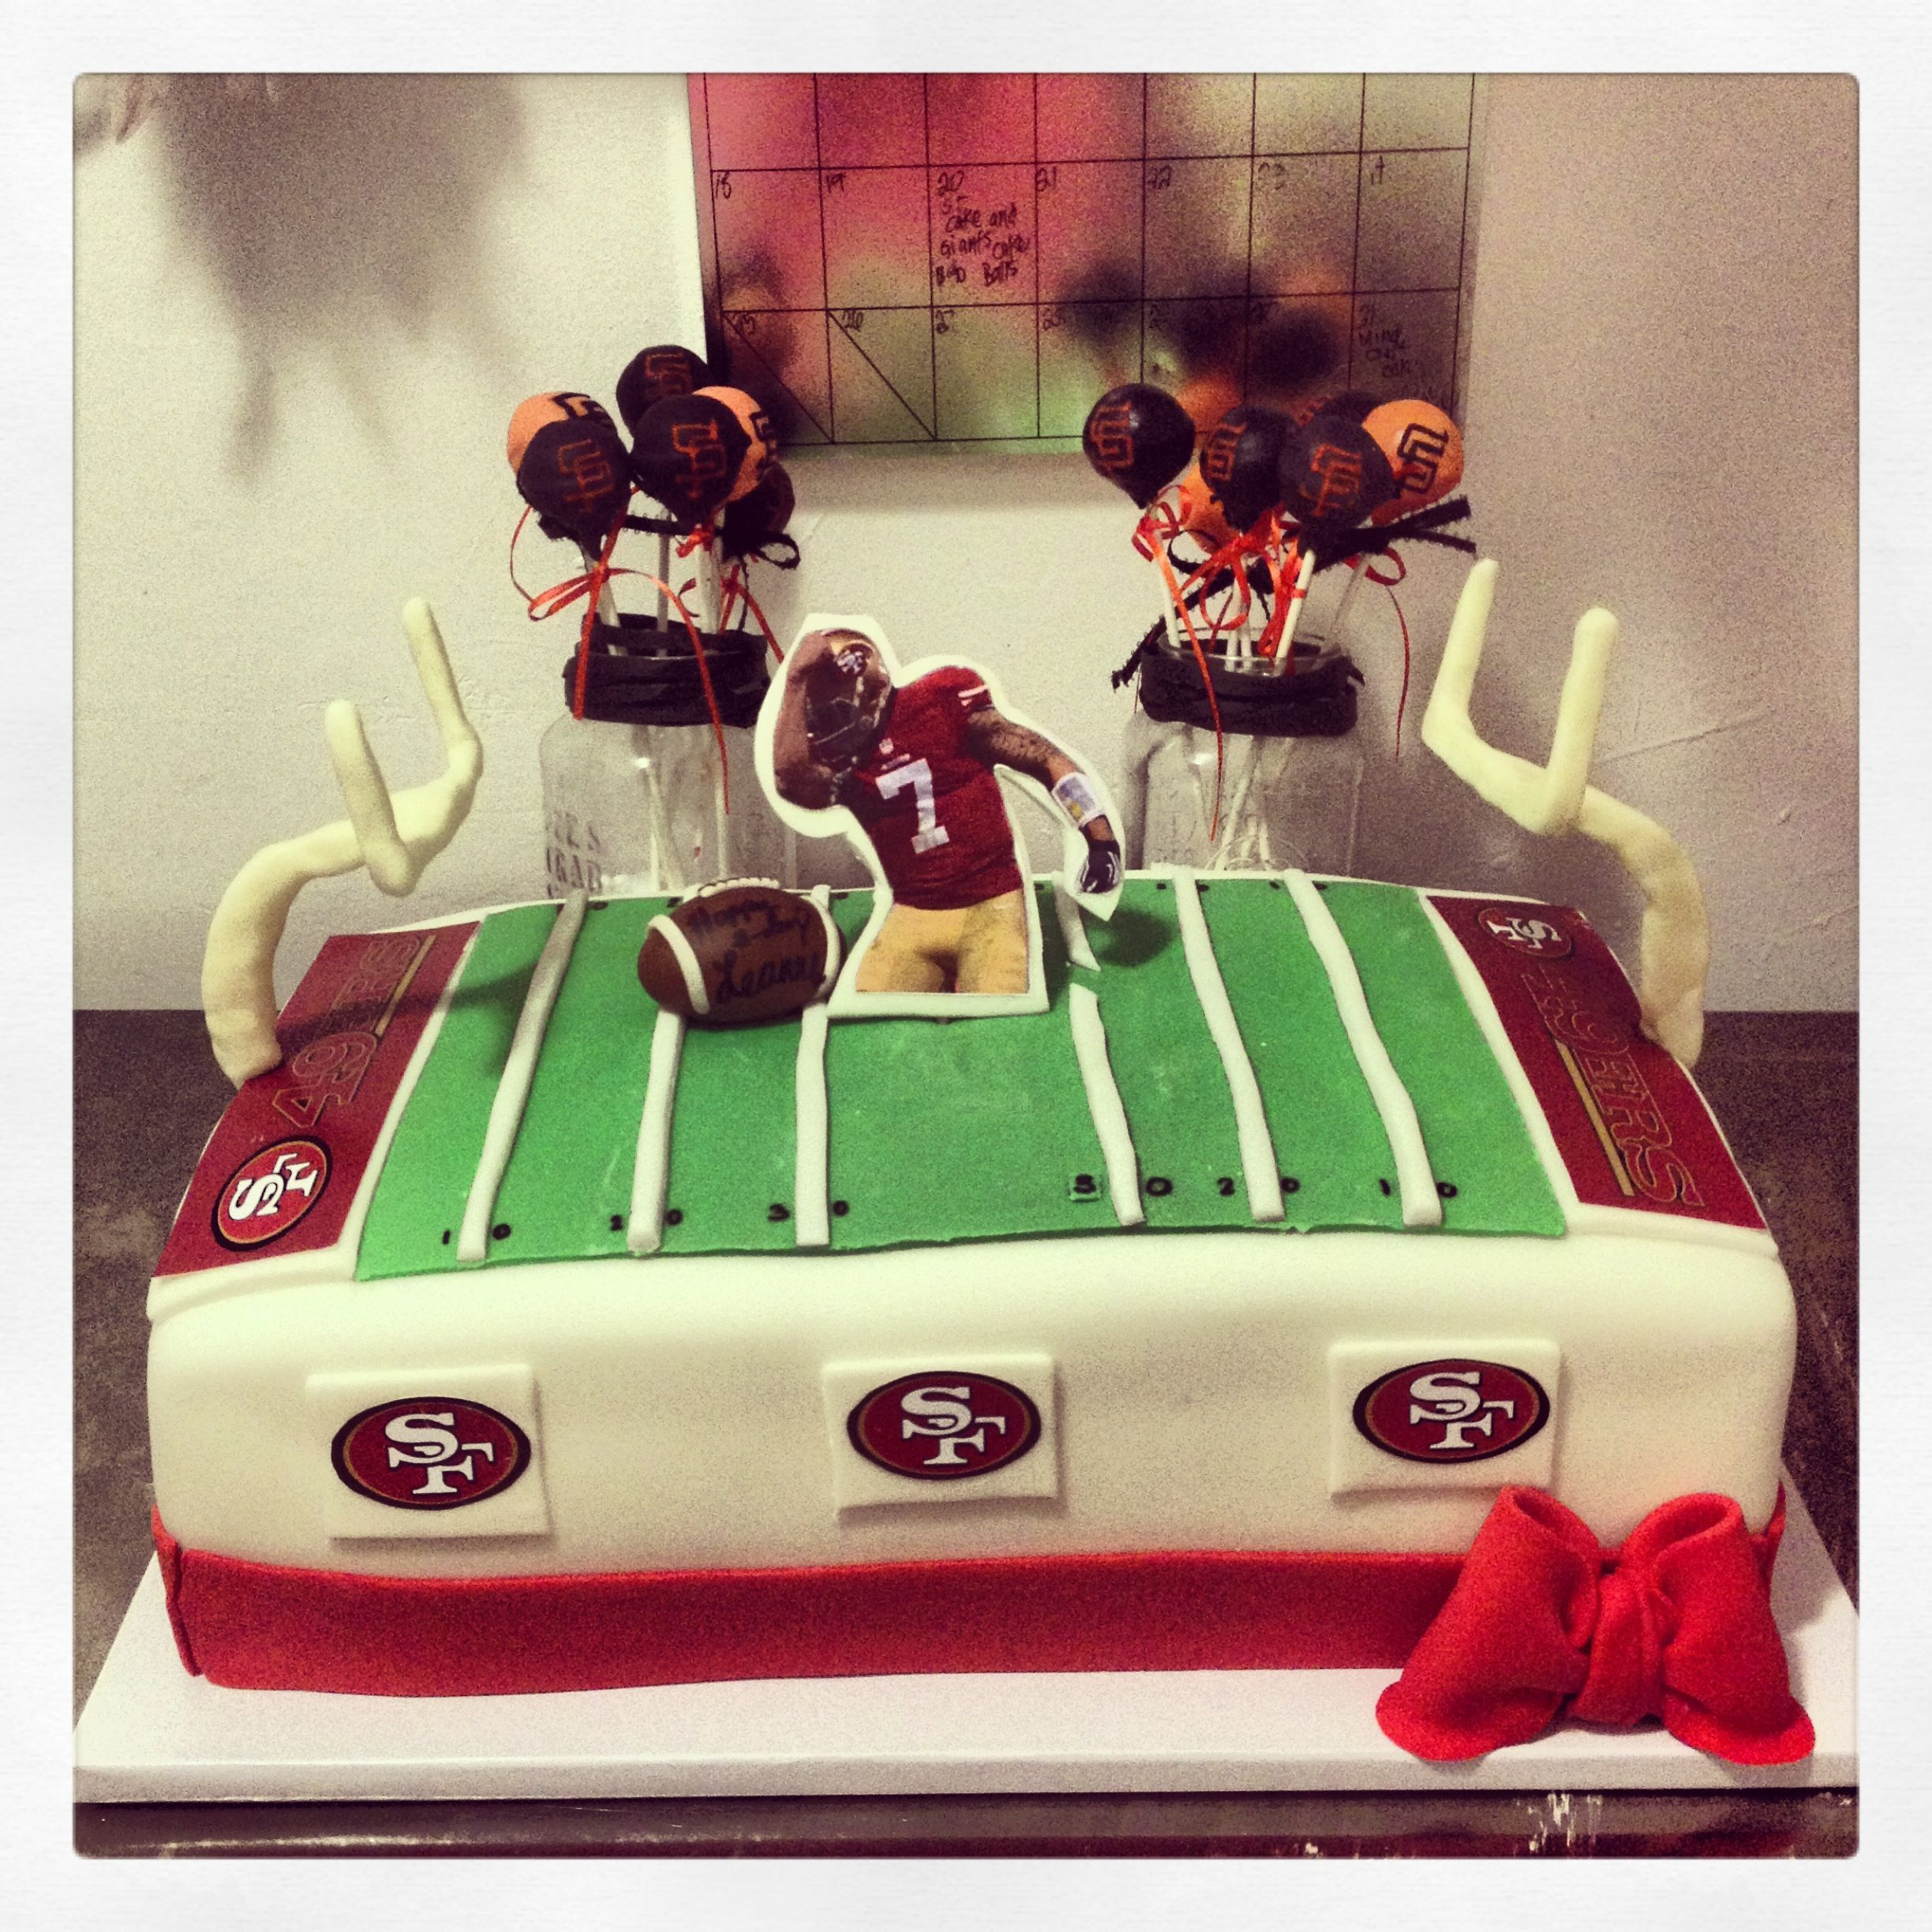 49ers Birthday Cake With San Francisco Giants Cake Pops Cakes